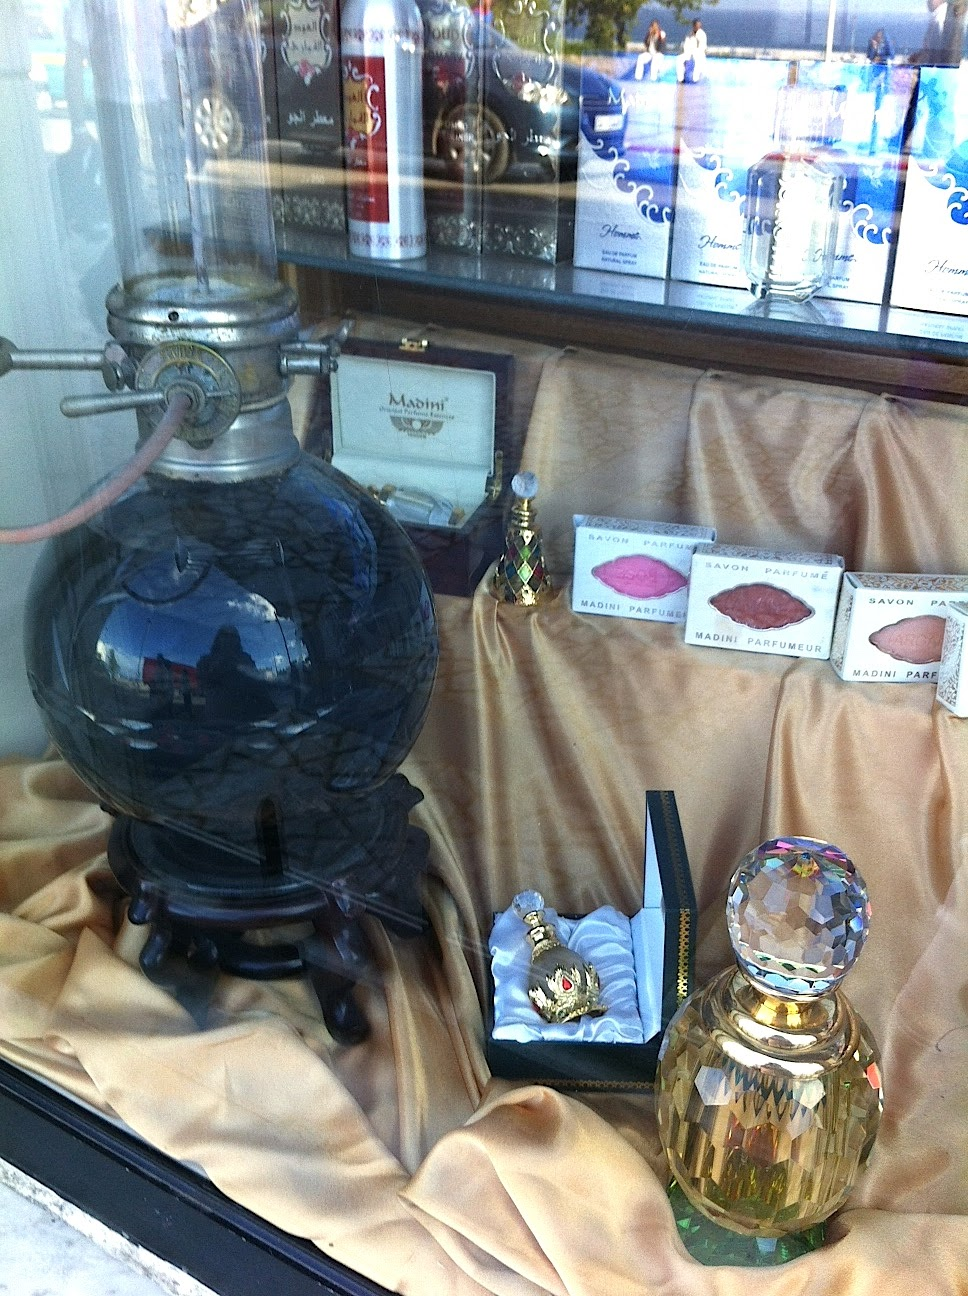 A passage to tangier shopping in tangier the madini for Interieur parfum